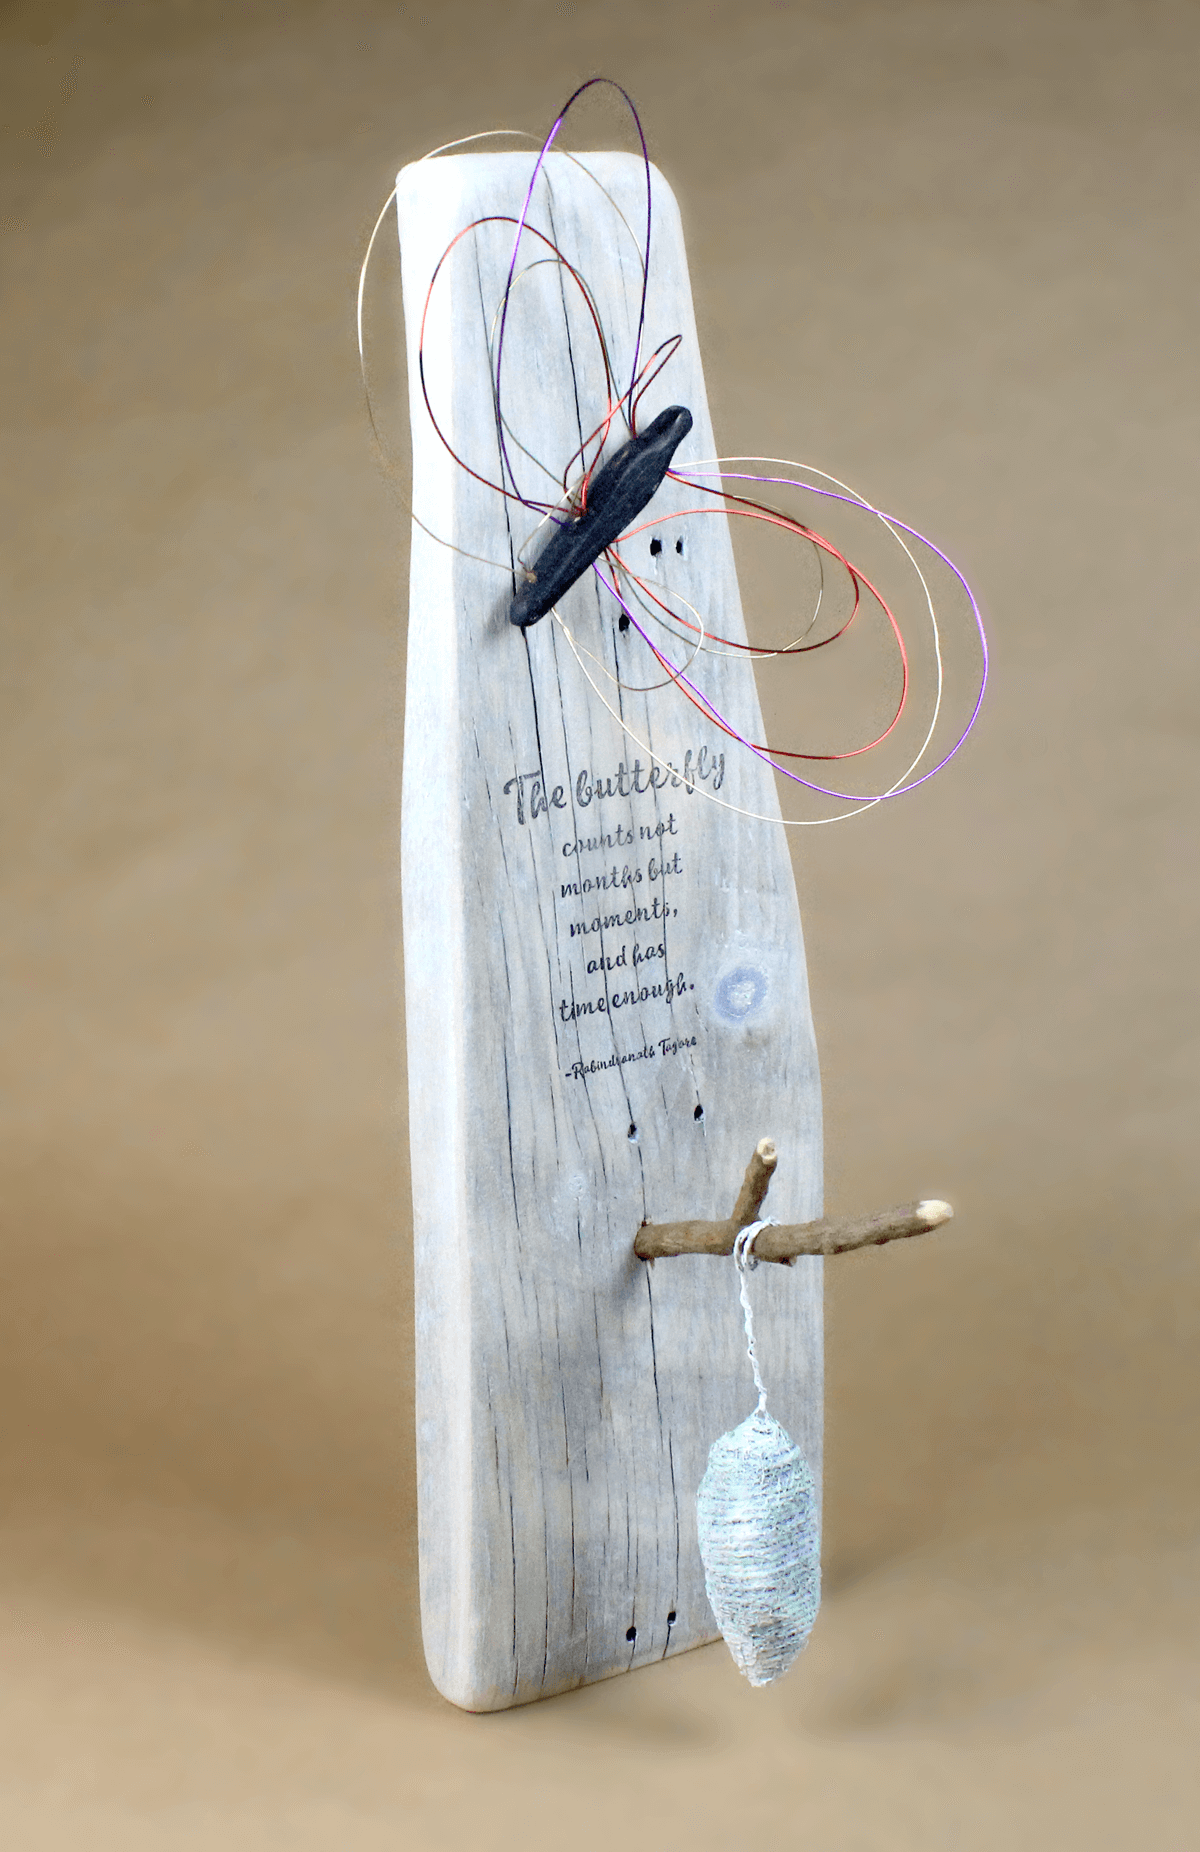 Salvaged barn wood, wire, textile, acrylic paint and hand-stamped sculpture of a butterfly and a chrysalis on a twig.